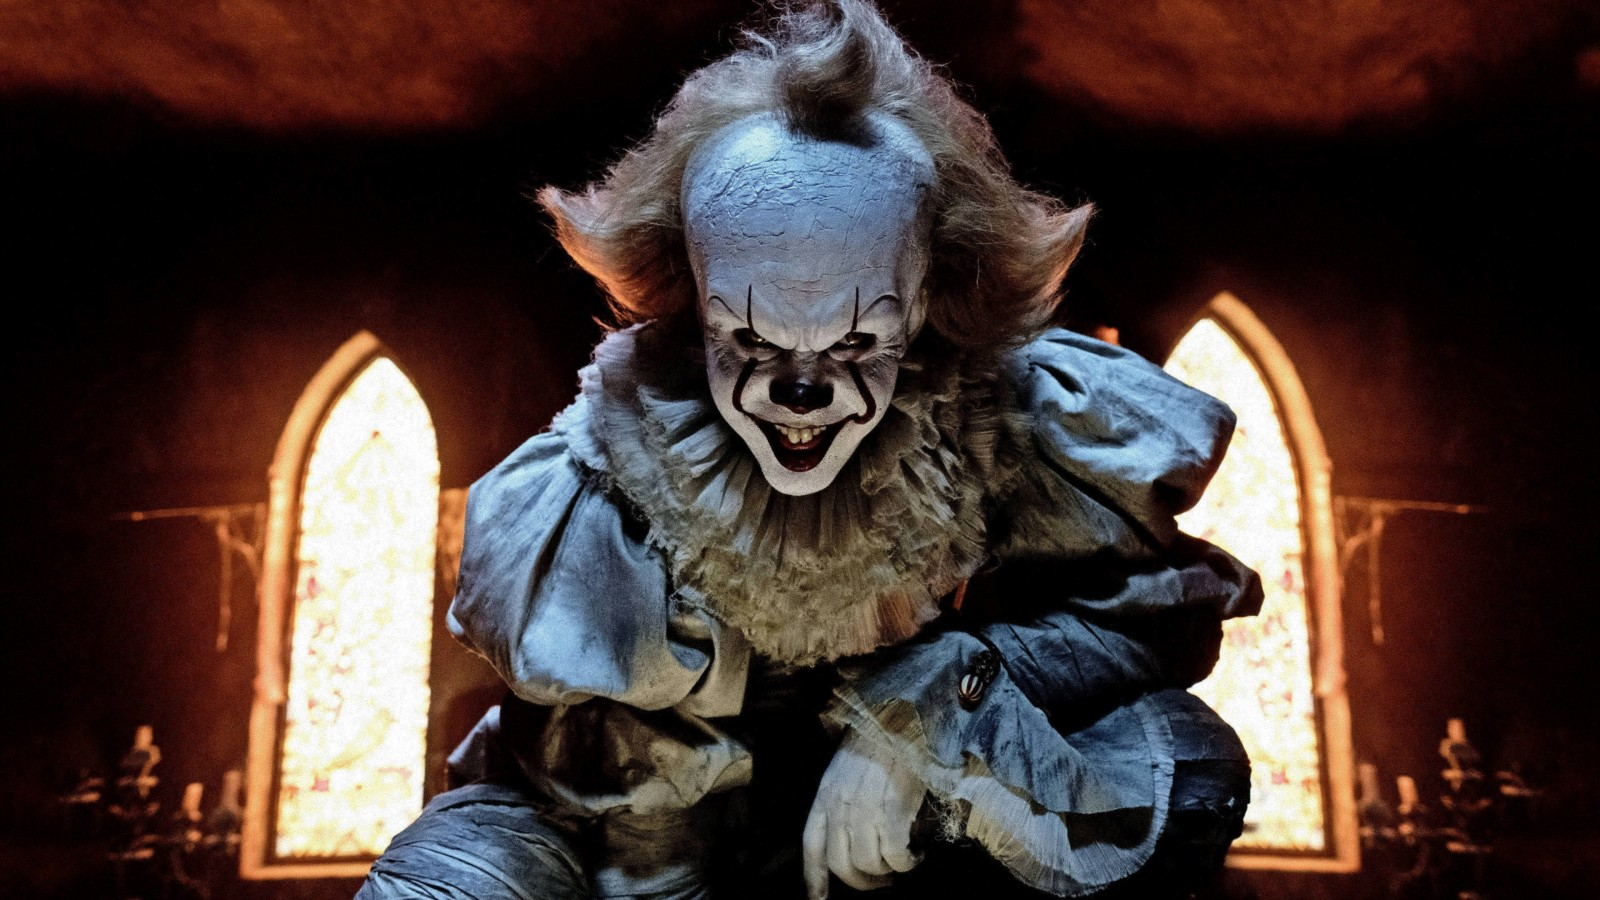 K 3d Wallpaper Download Pennywise The Clown In It 4k Wallpapers Hd Wallpapers